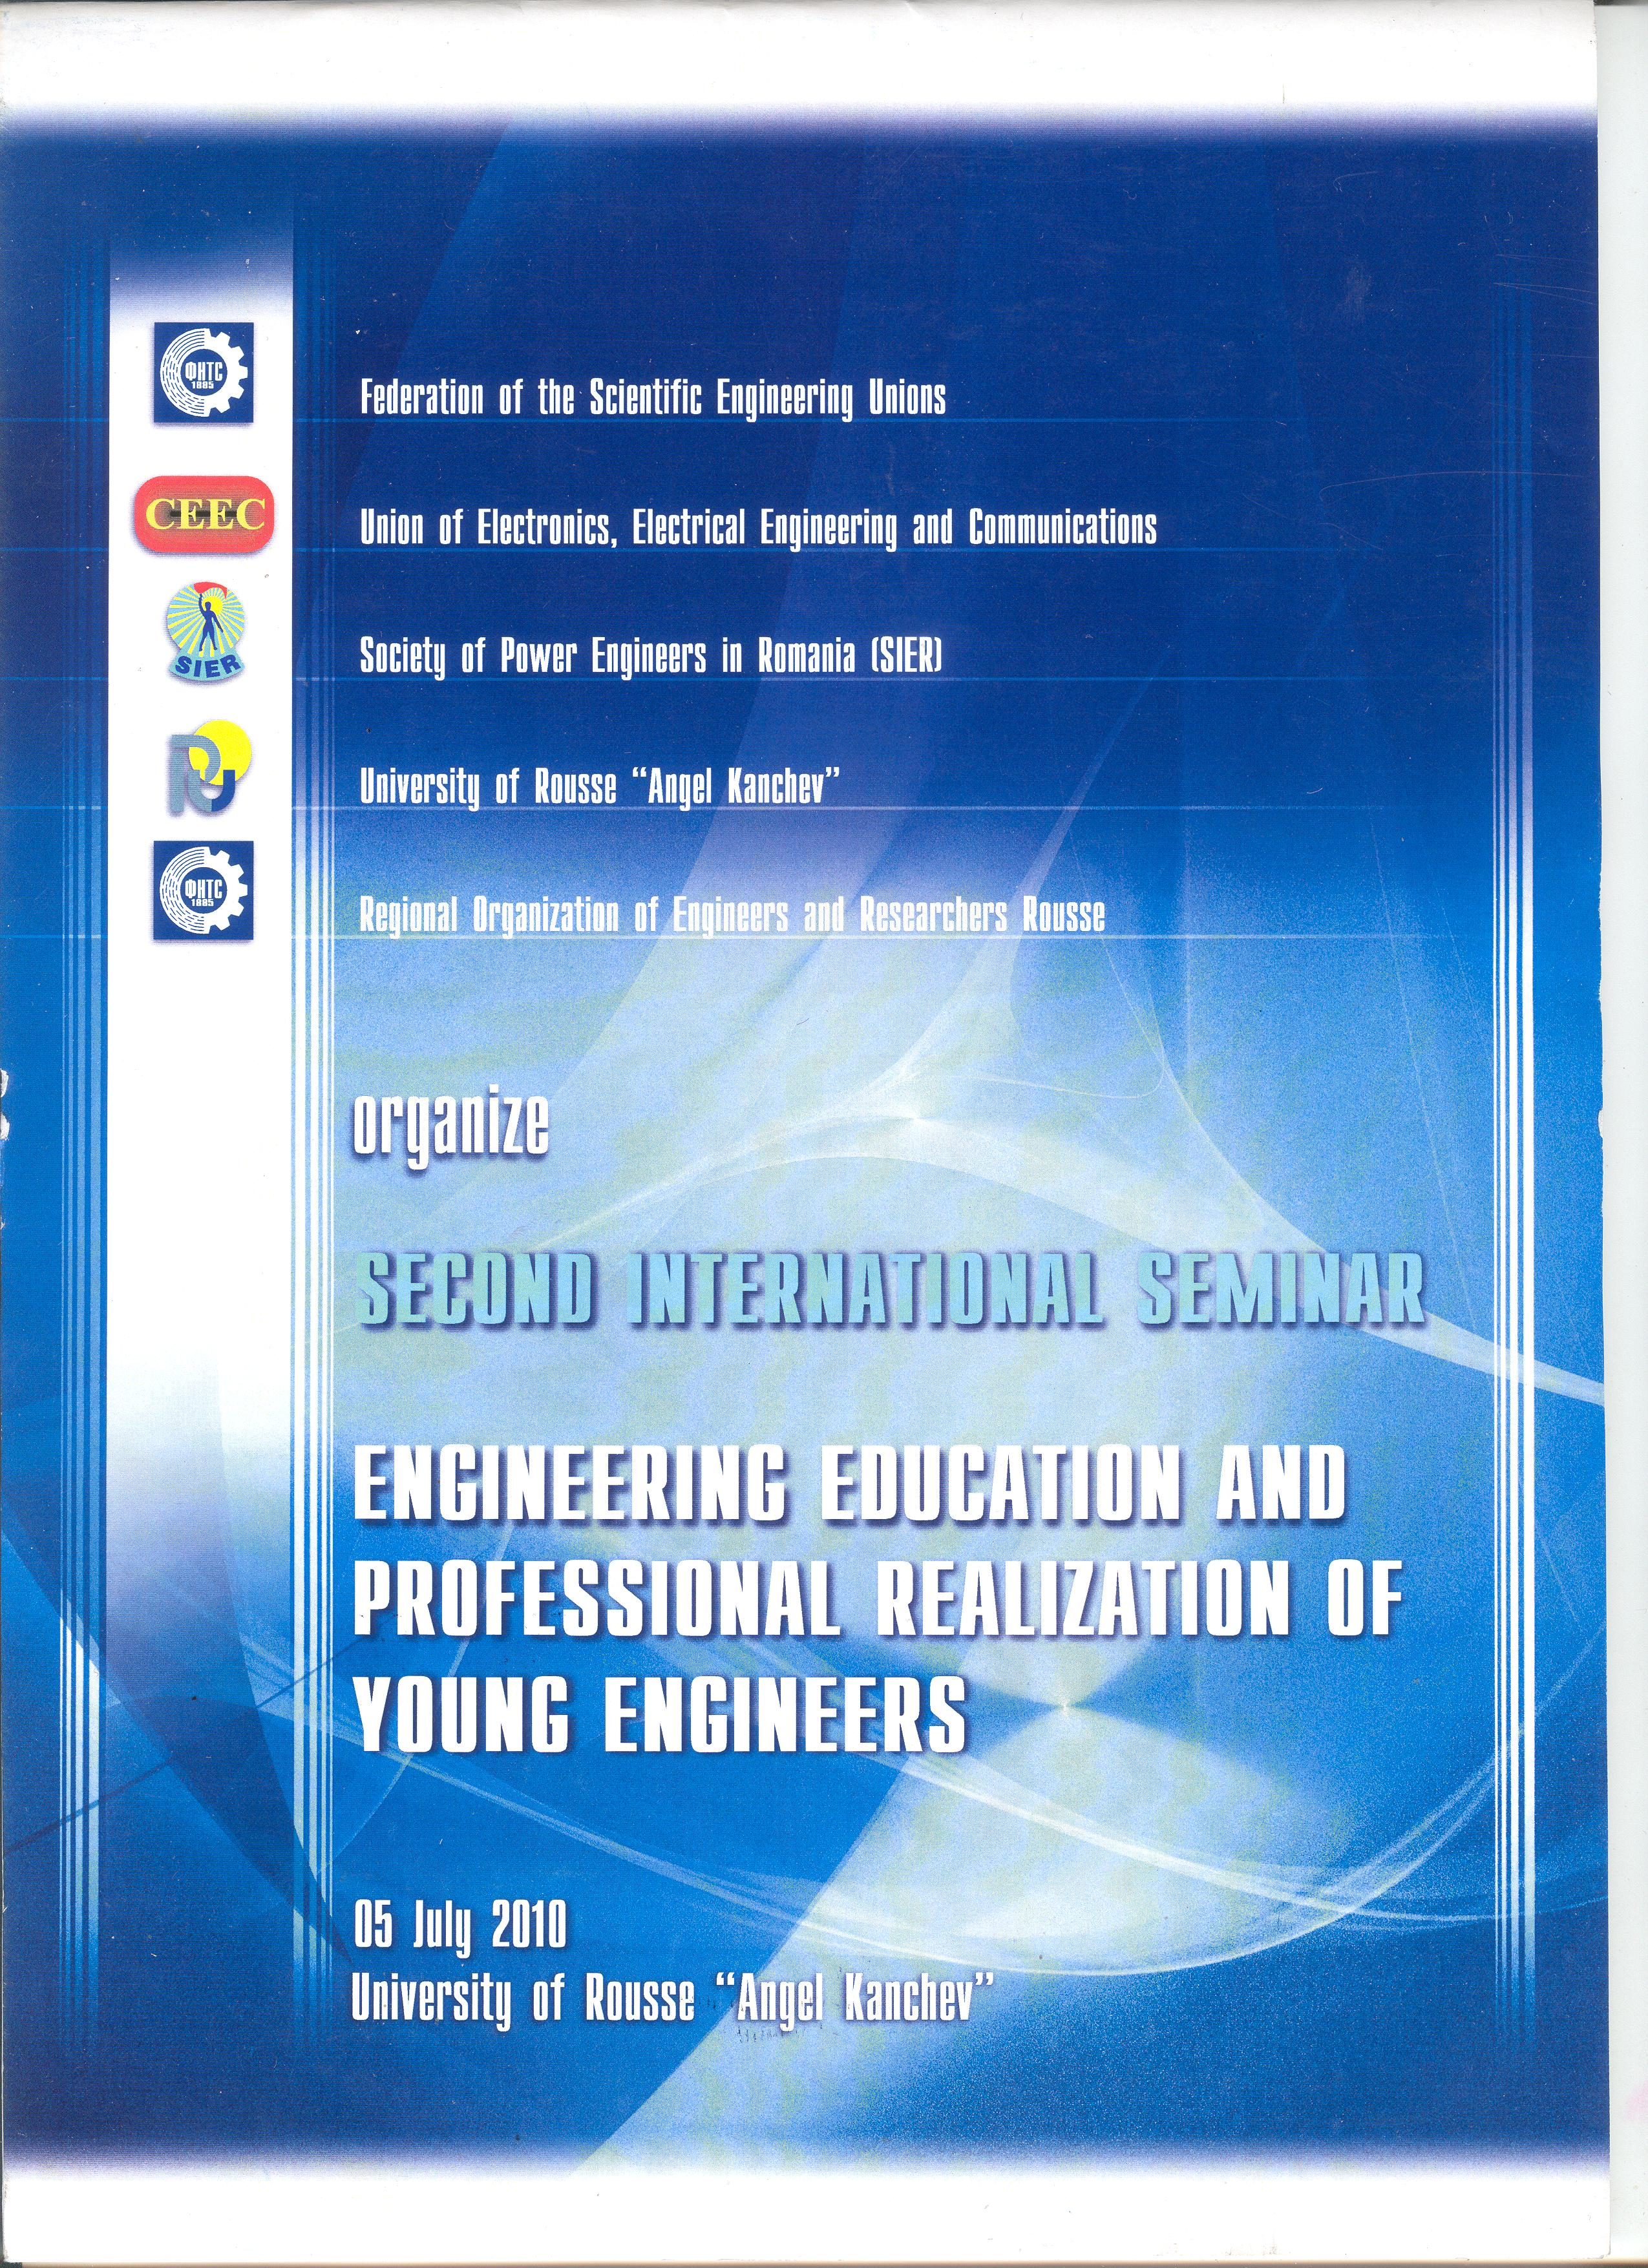 2nd International Seminar - Engineering education and professional realization of young engineers